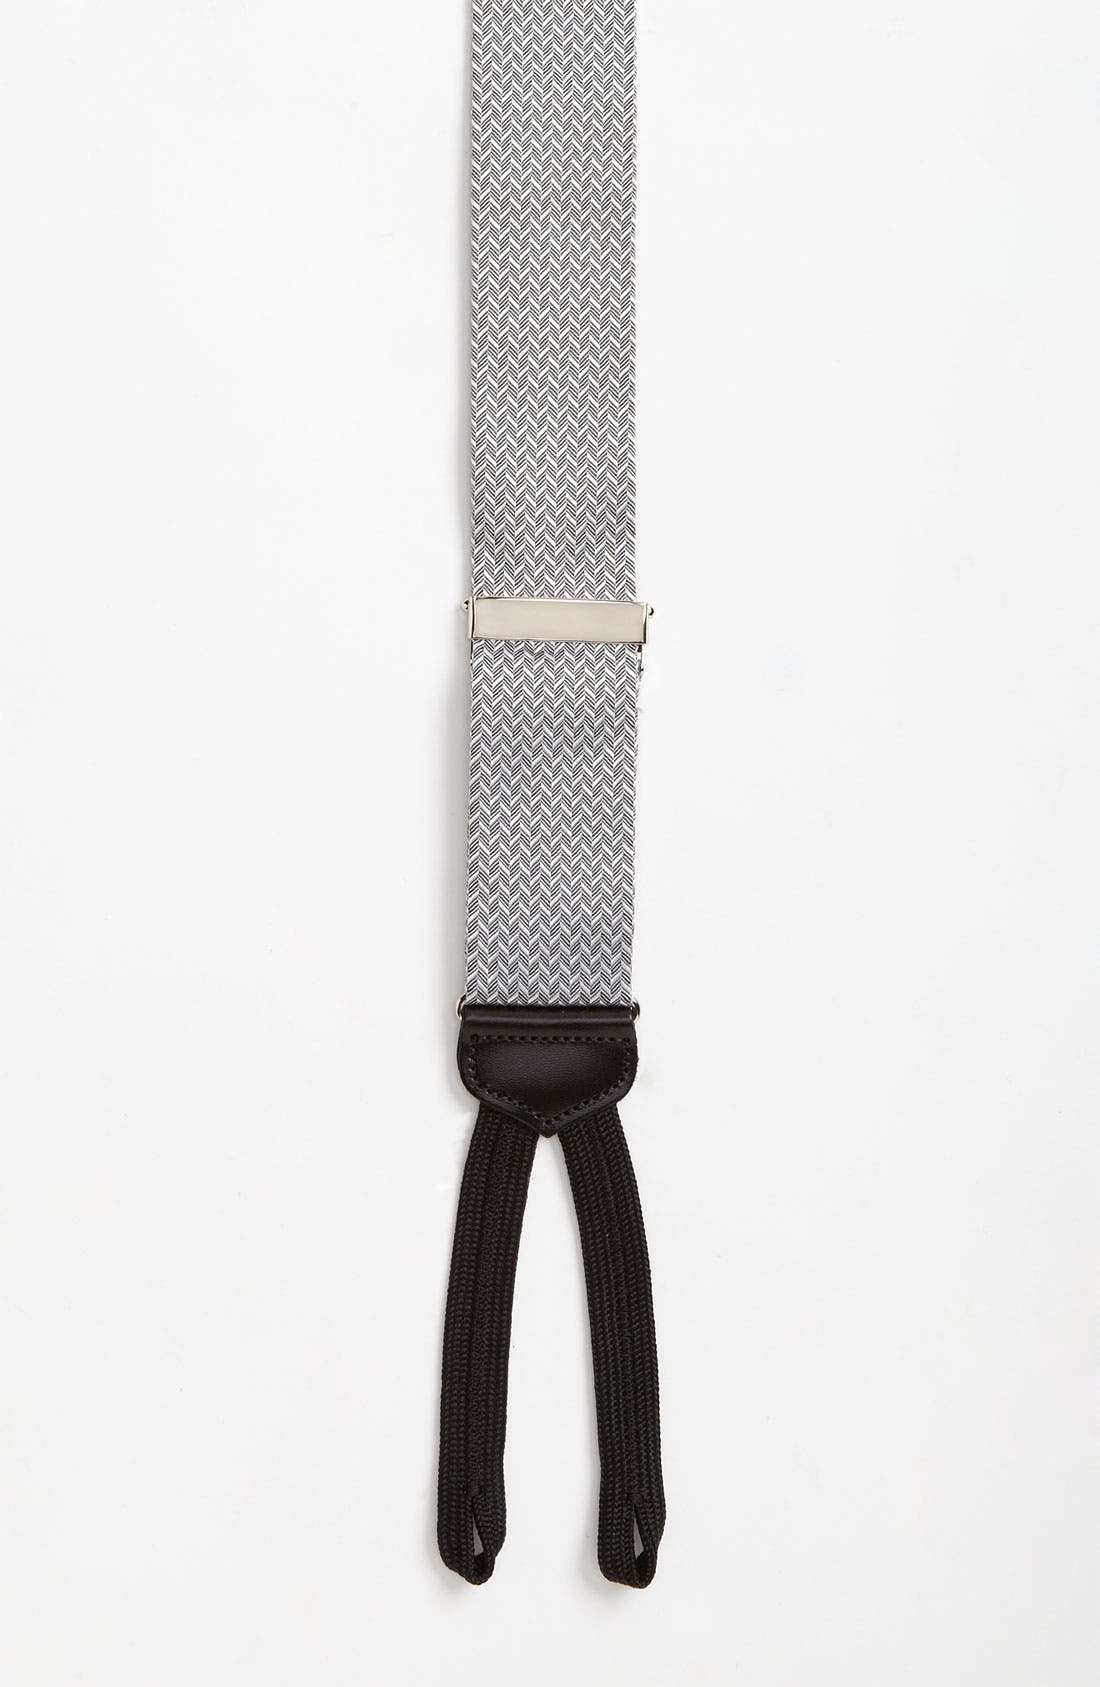 Trafalgar 'Southwick' Formal Suspenders